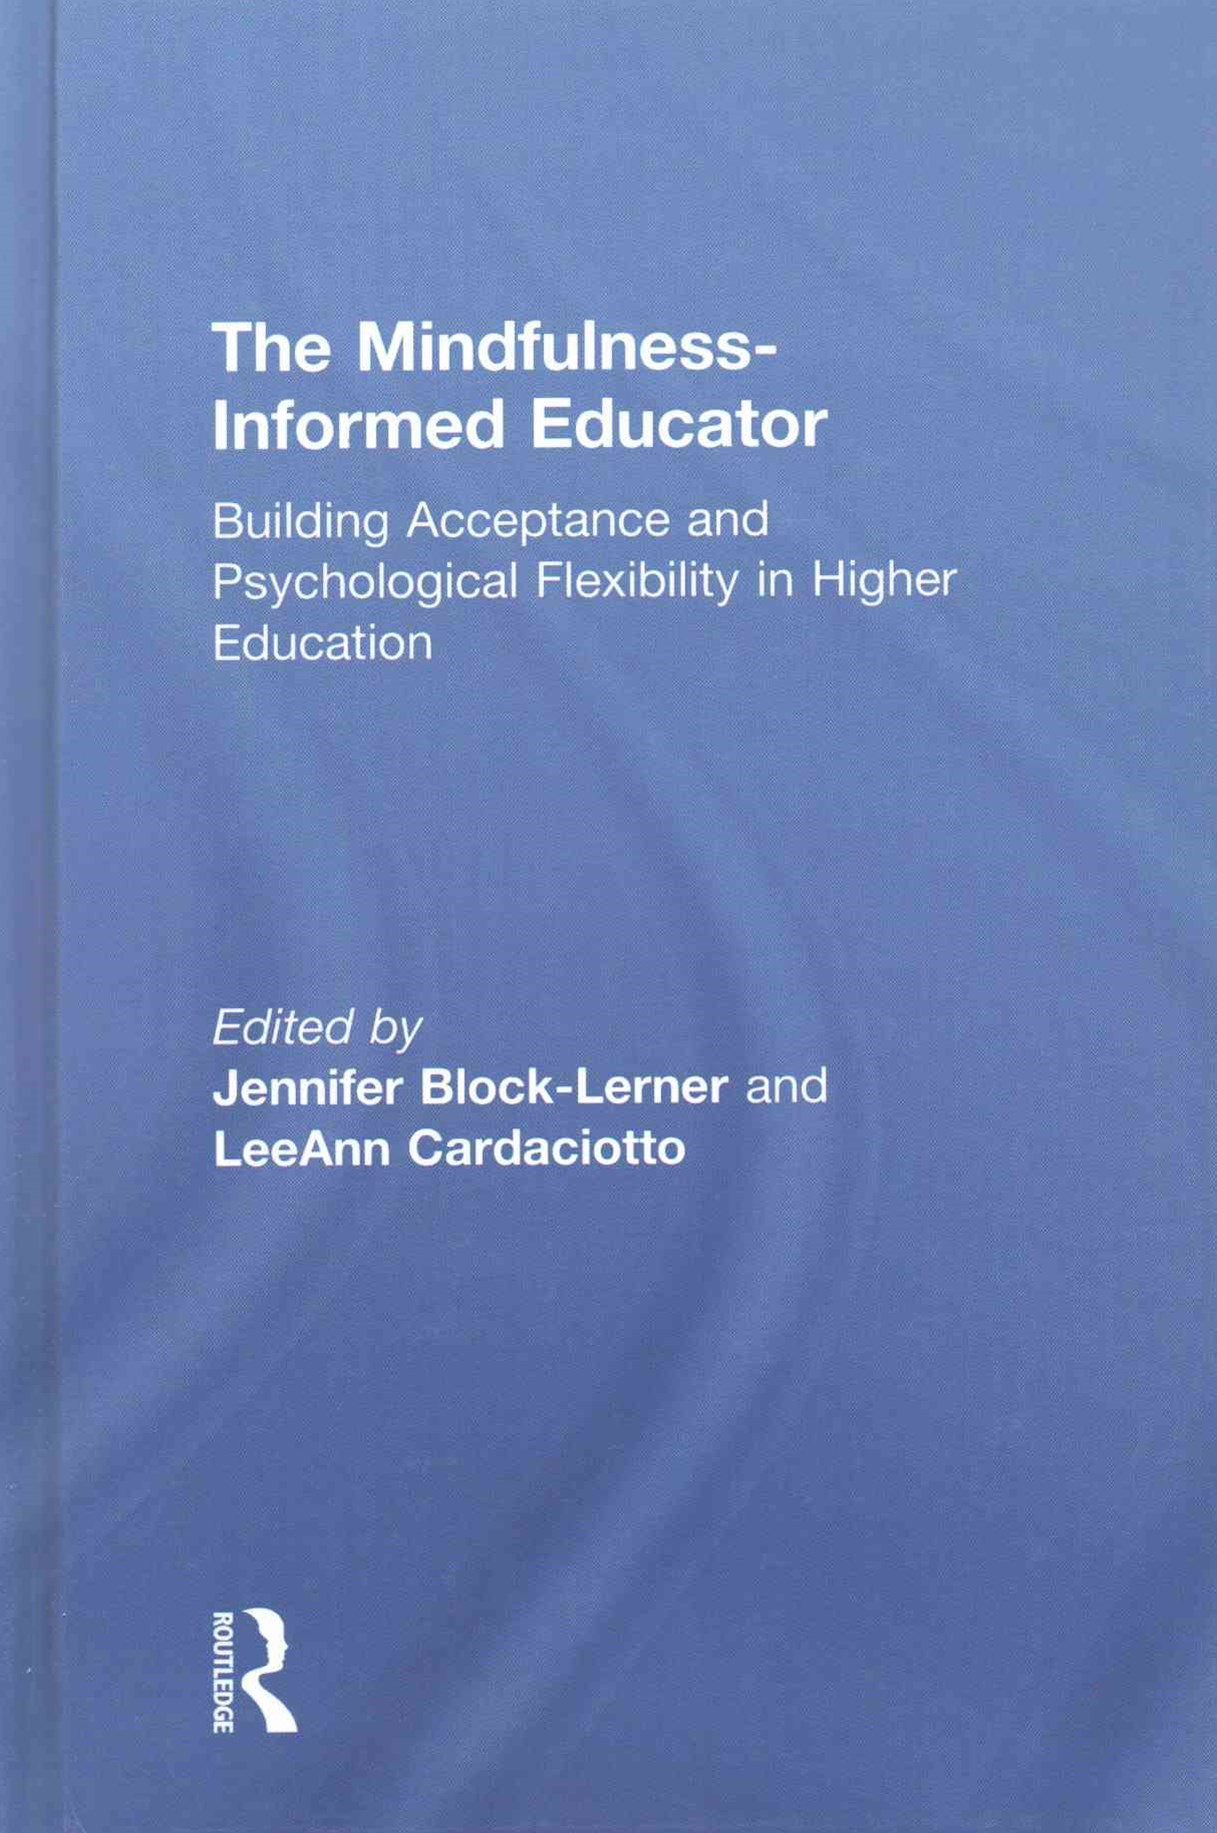 The Mindfulness-Informed Educator